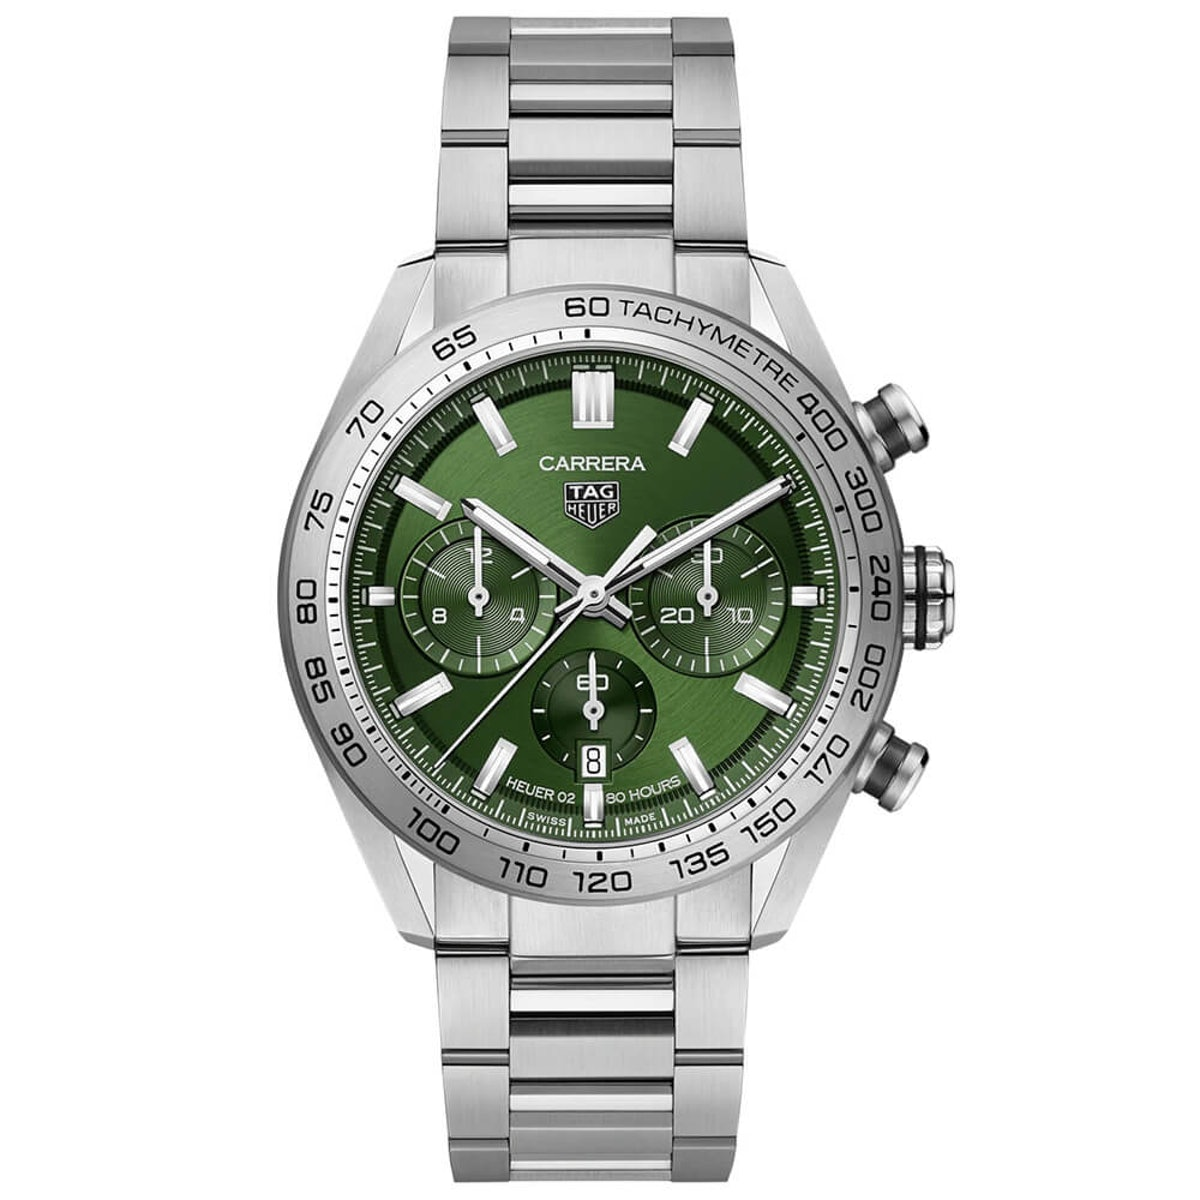 TAG Heuer Carrerra Heuer 02 Green Dial Chronograph Watch, 44mm